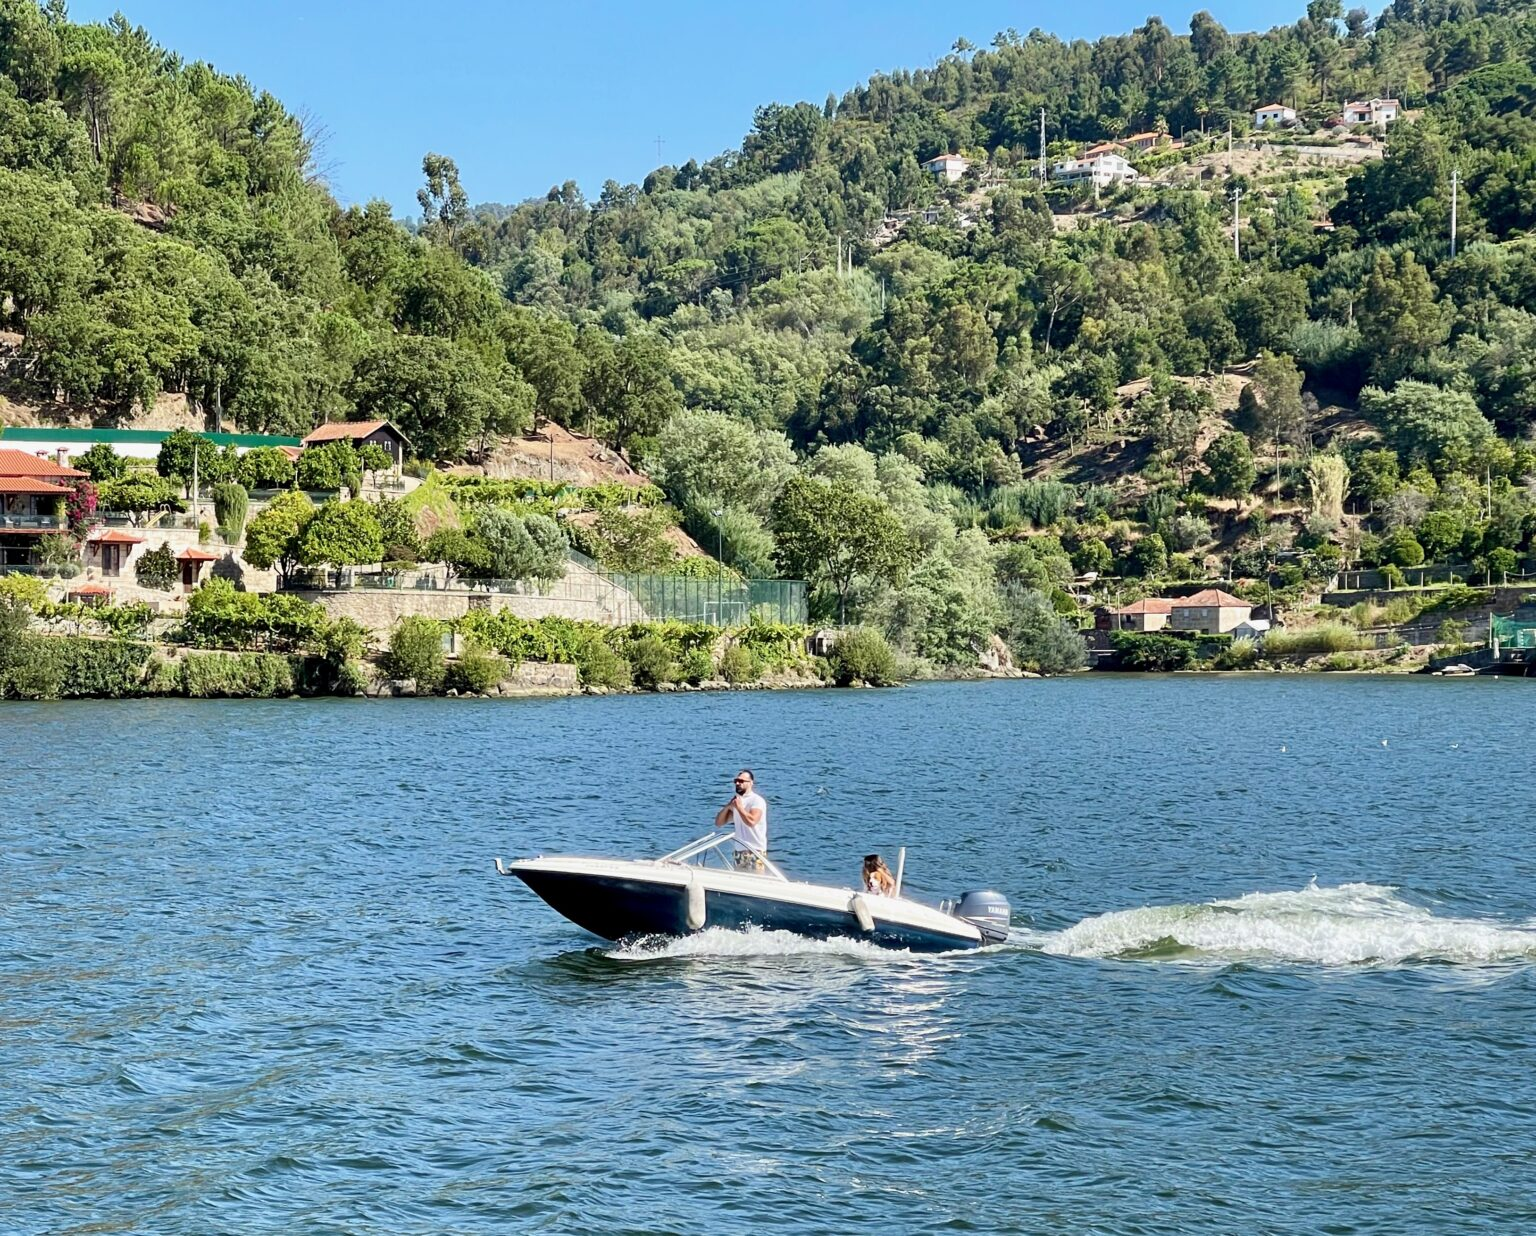 Pleasure craft and other cruise ships are the only vessels that ply the Douro River in Portugal.